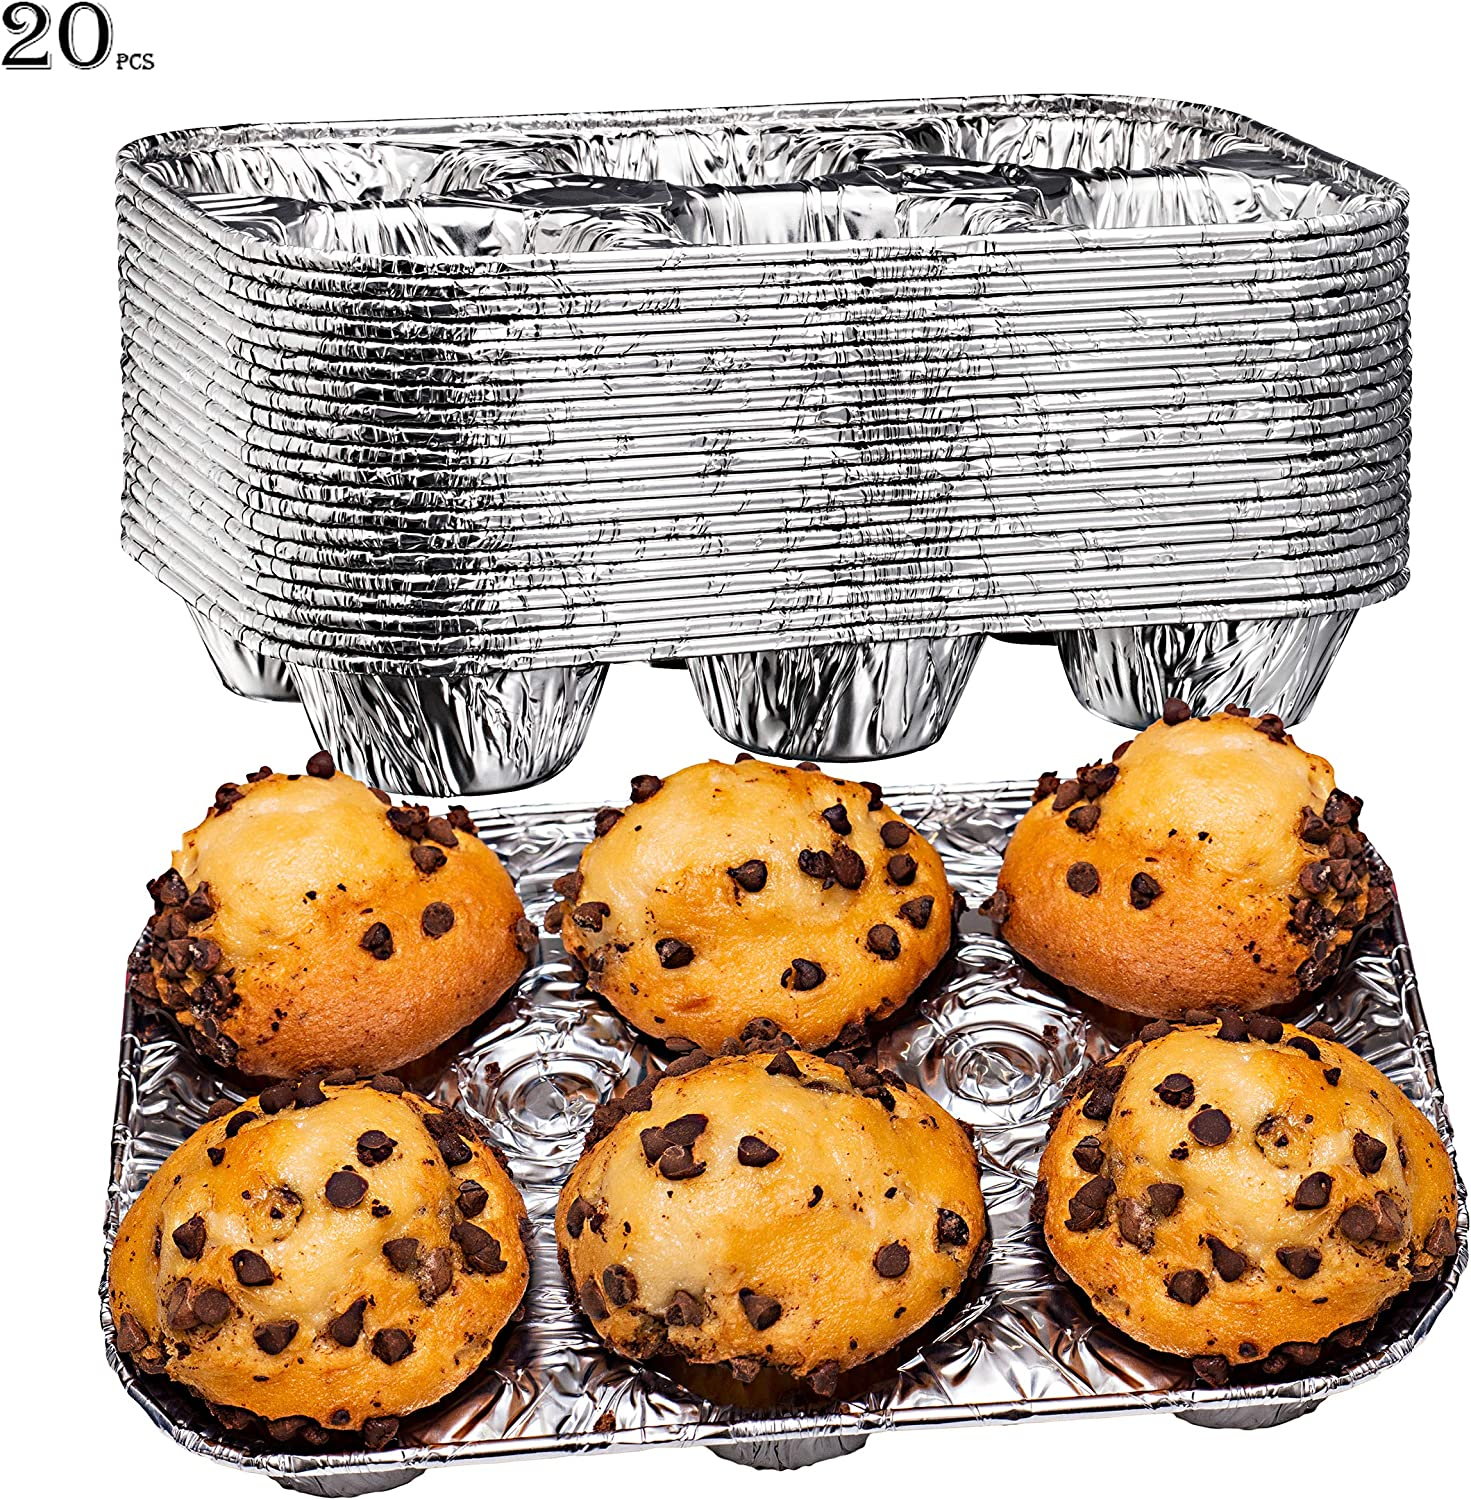 Elite Selection Aluminum Foil Muffin Pans – Reusable and Disposable Muffin foil Pans – Stackable 6 Slot Muffin Trays – Oven & Freezer Safe –20 Piece Set